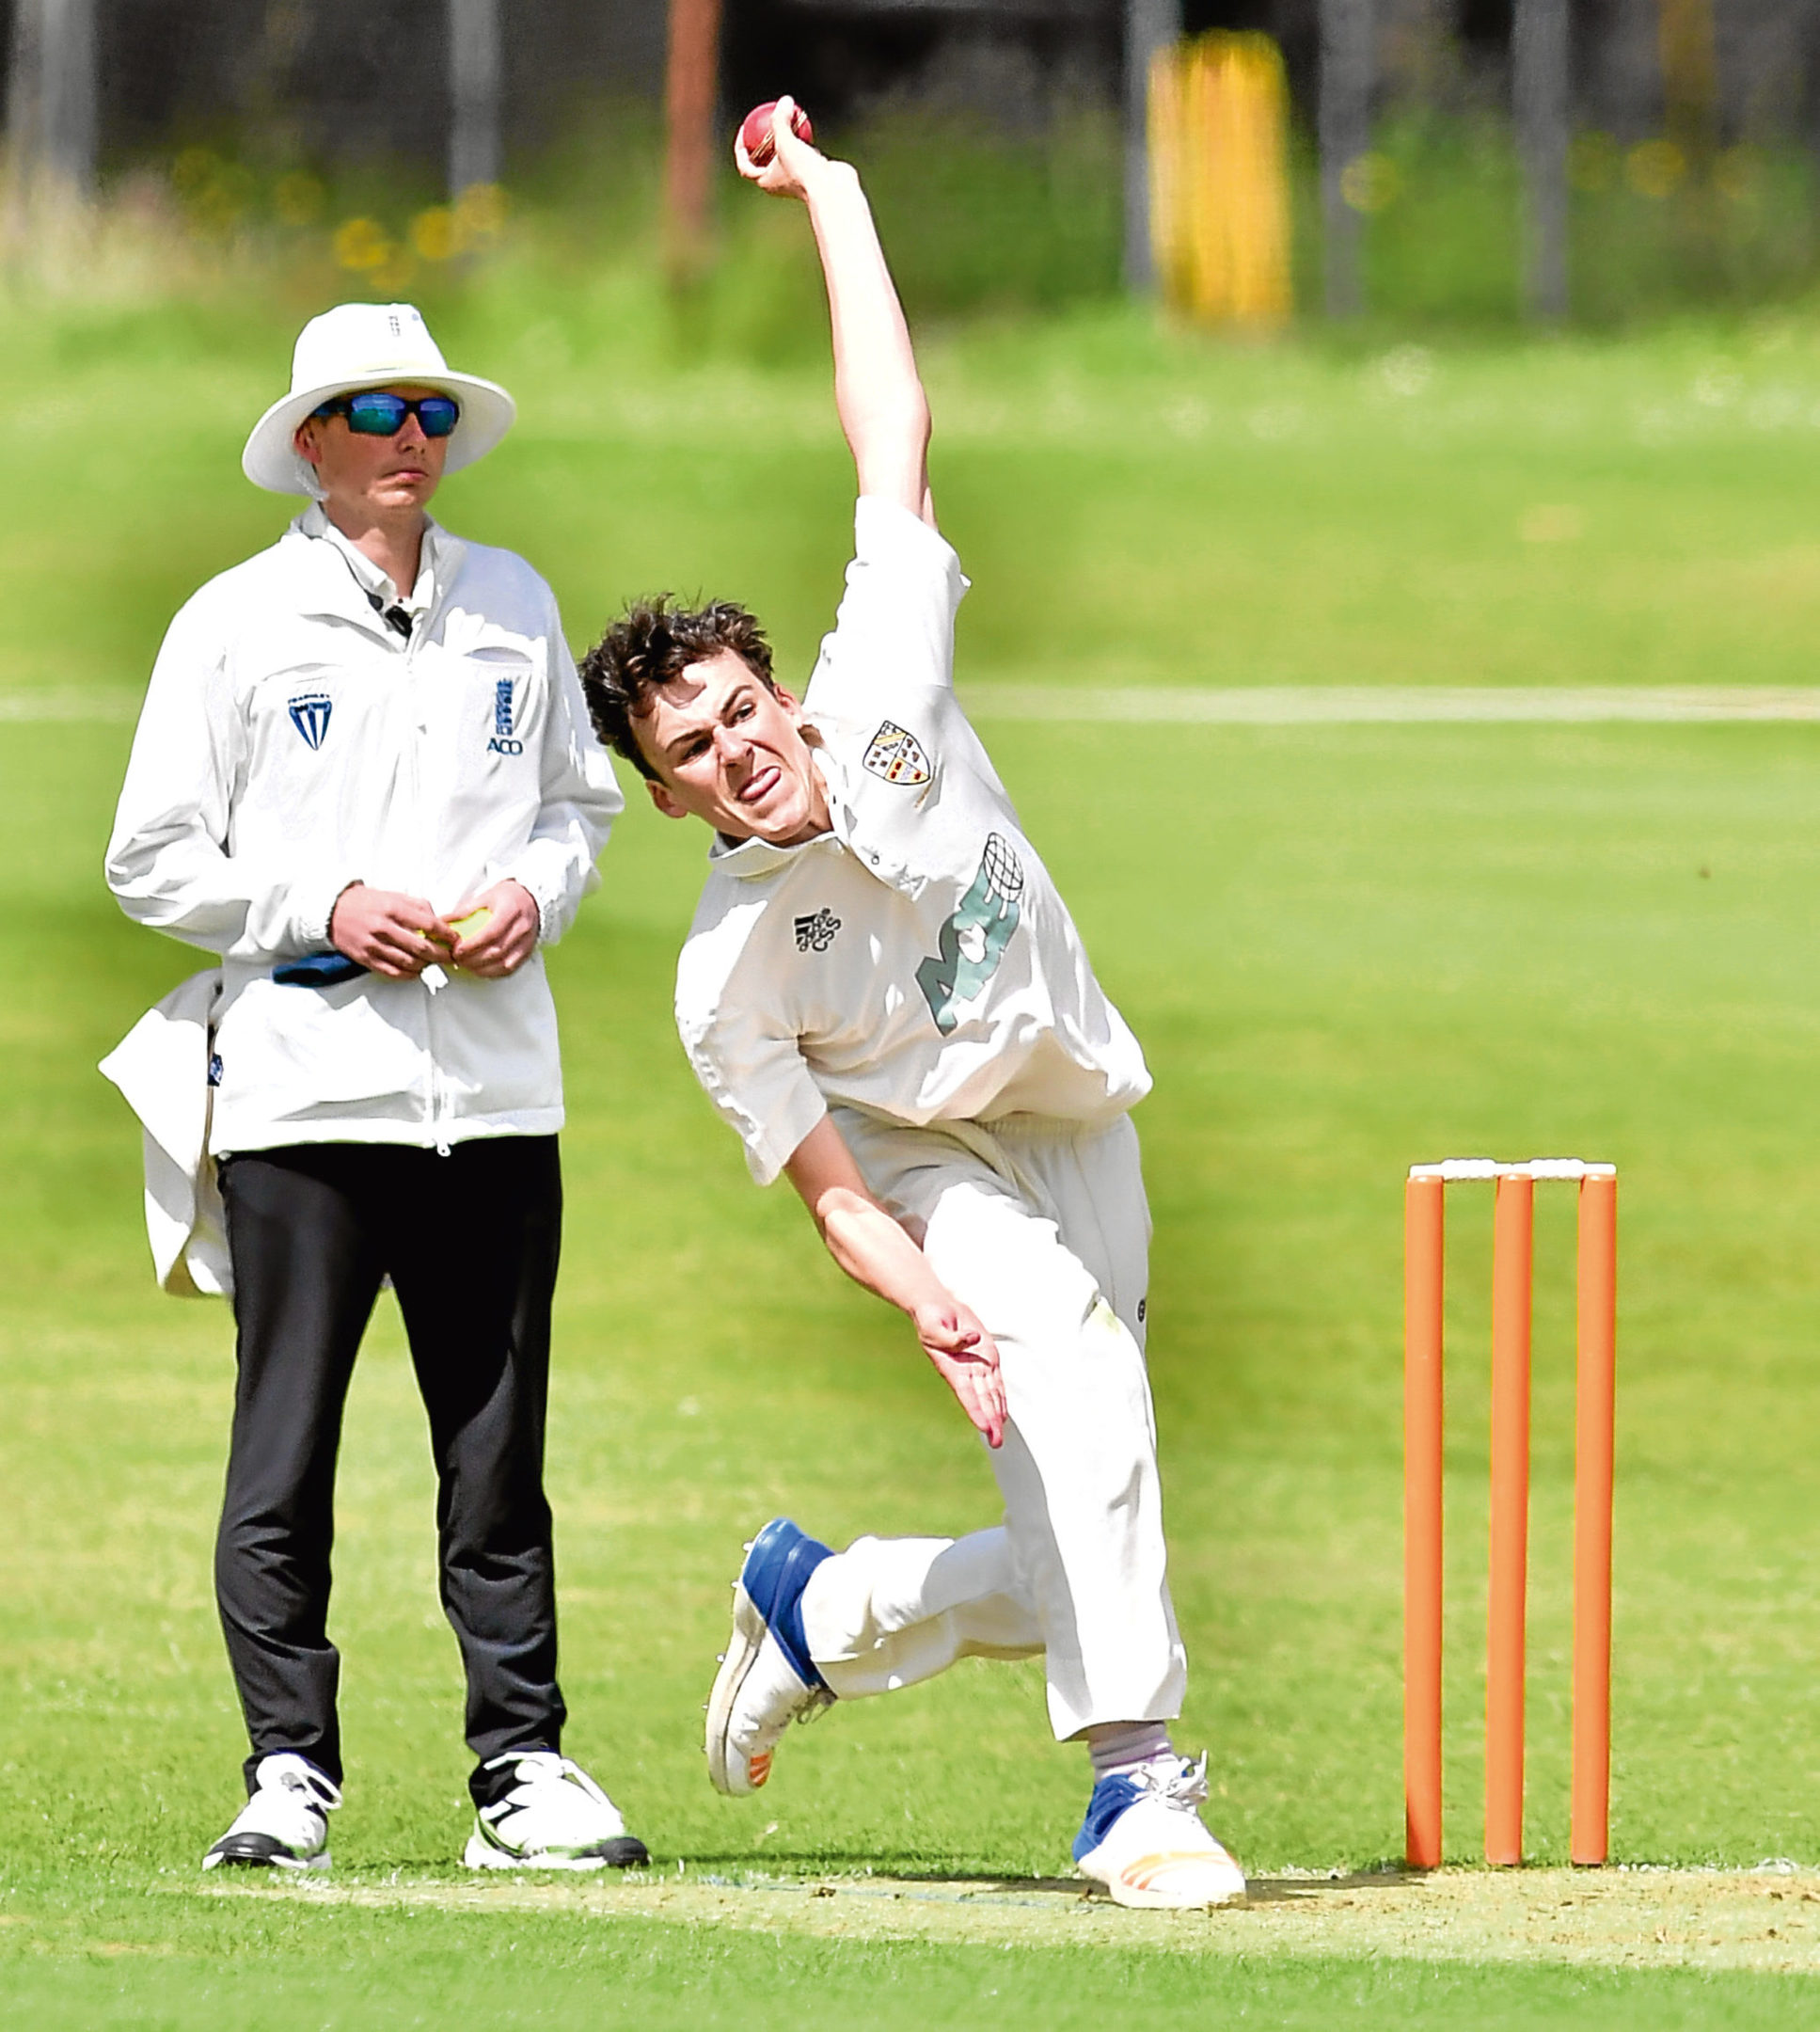 Aberdeenshire bowler Connor Shorten in action.